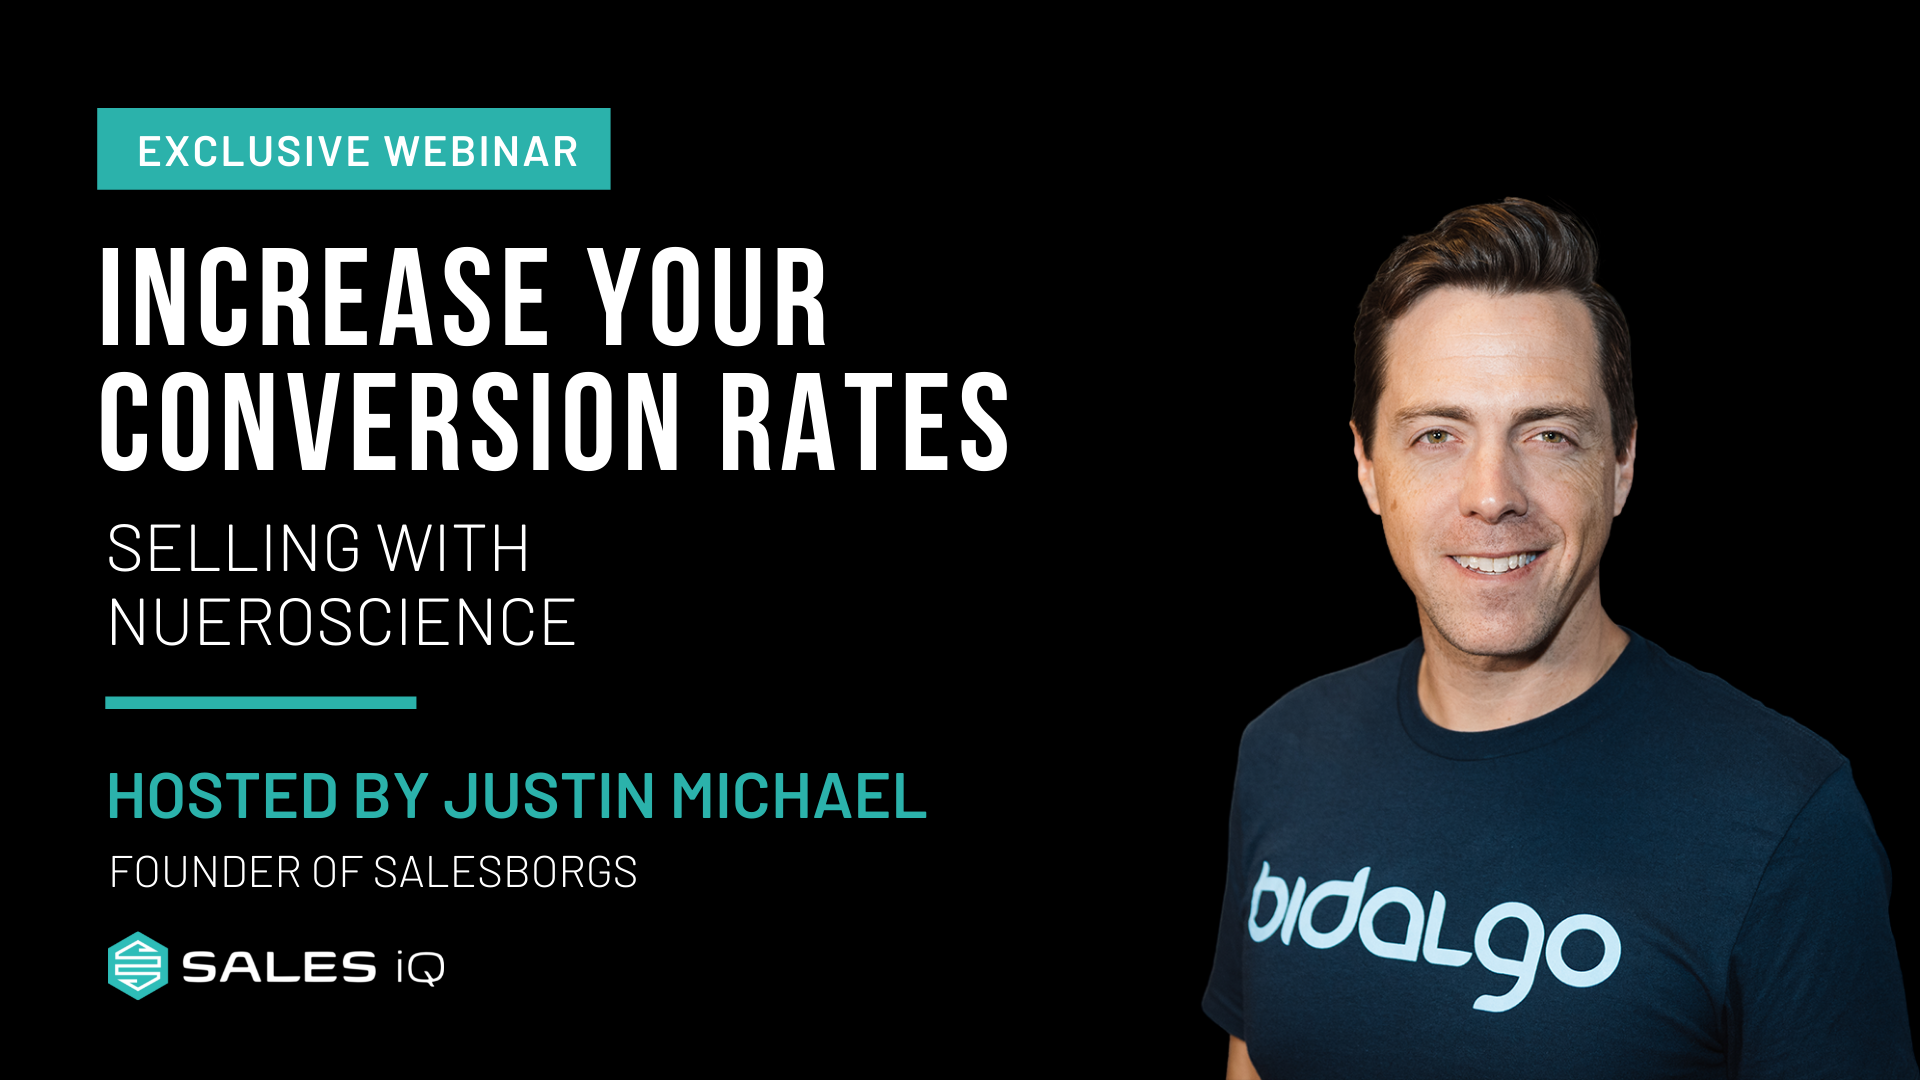 Increase your Conversion Rates by Selling with Neuroscience